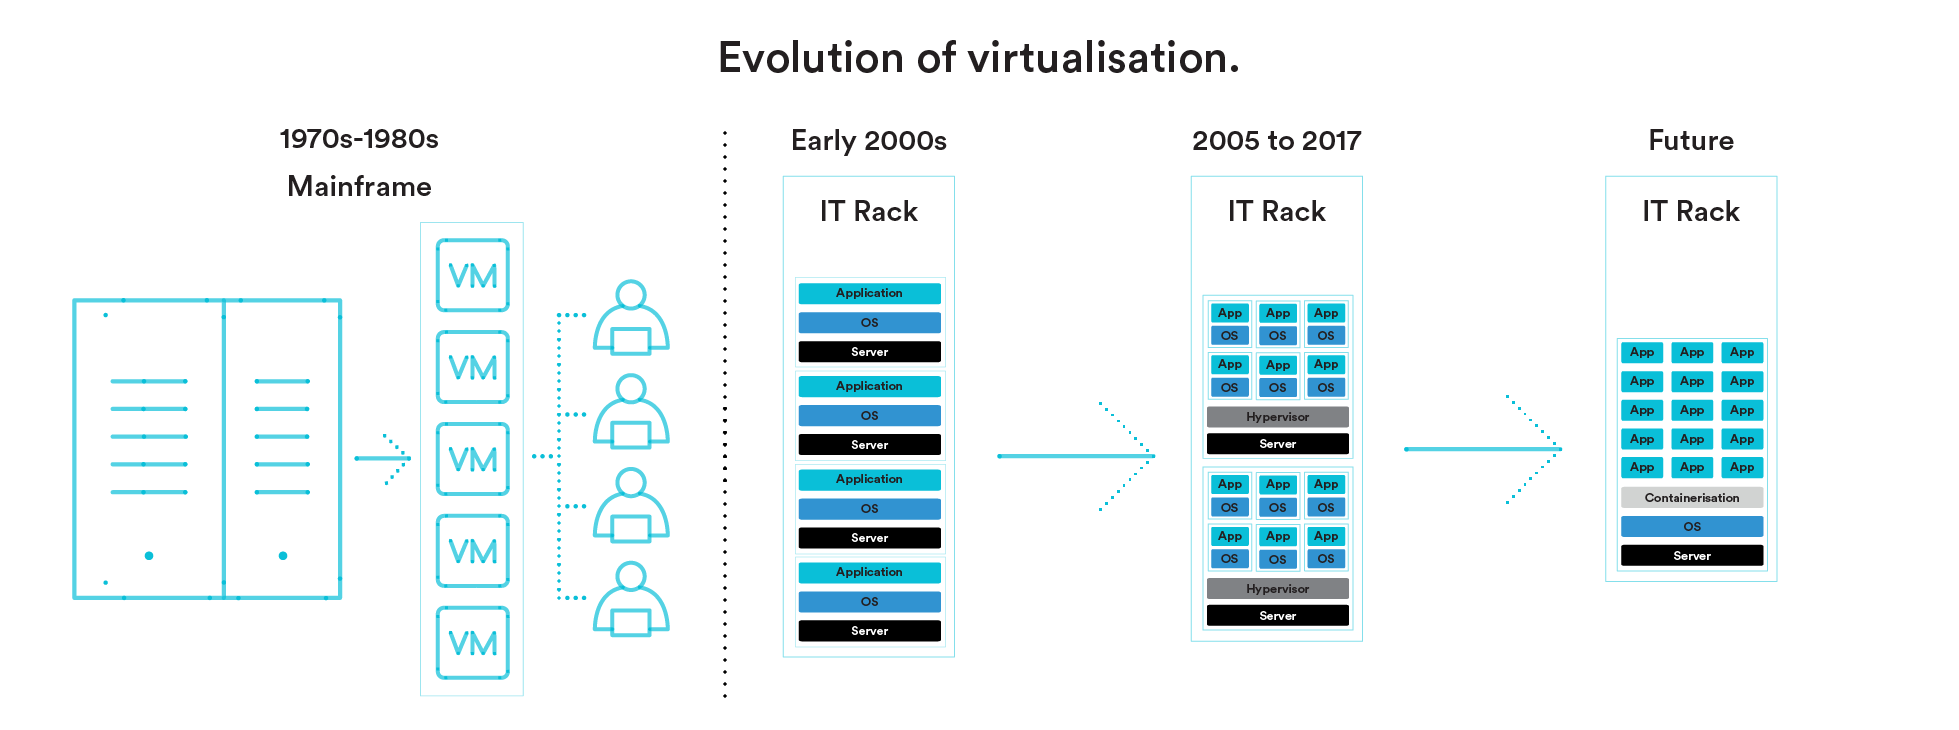 Macquarie Cloud Services - virtualisation of containers has changed the cloud services hosting environment dramatically